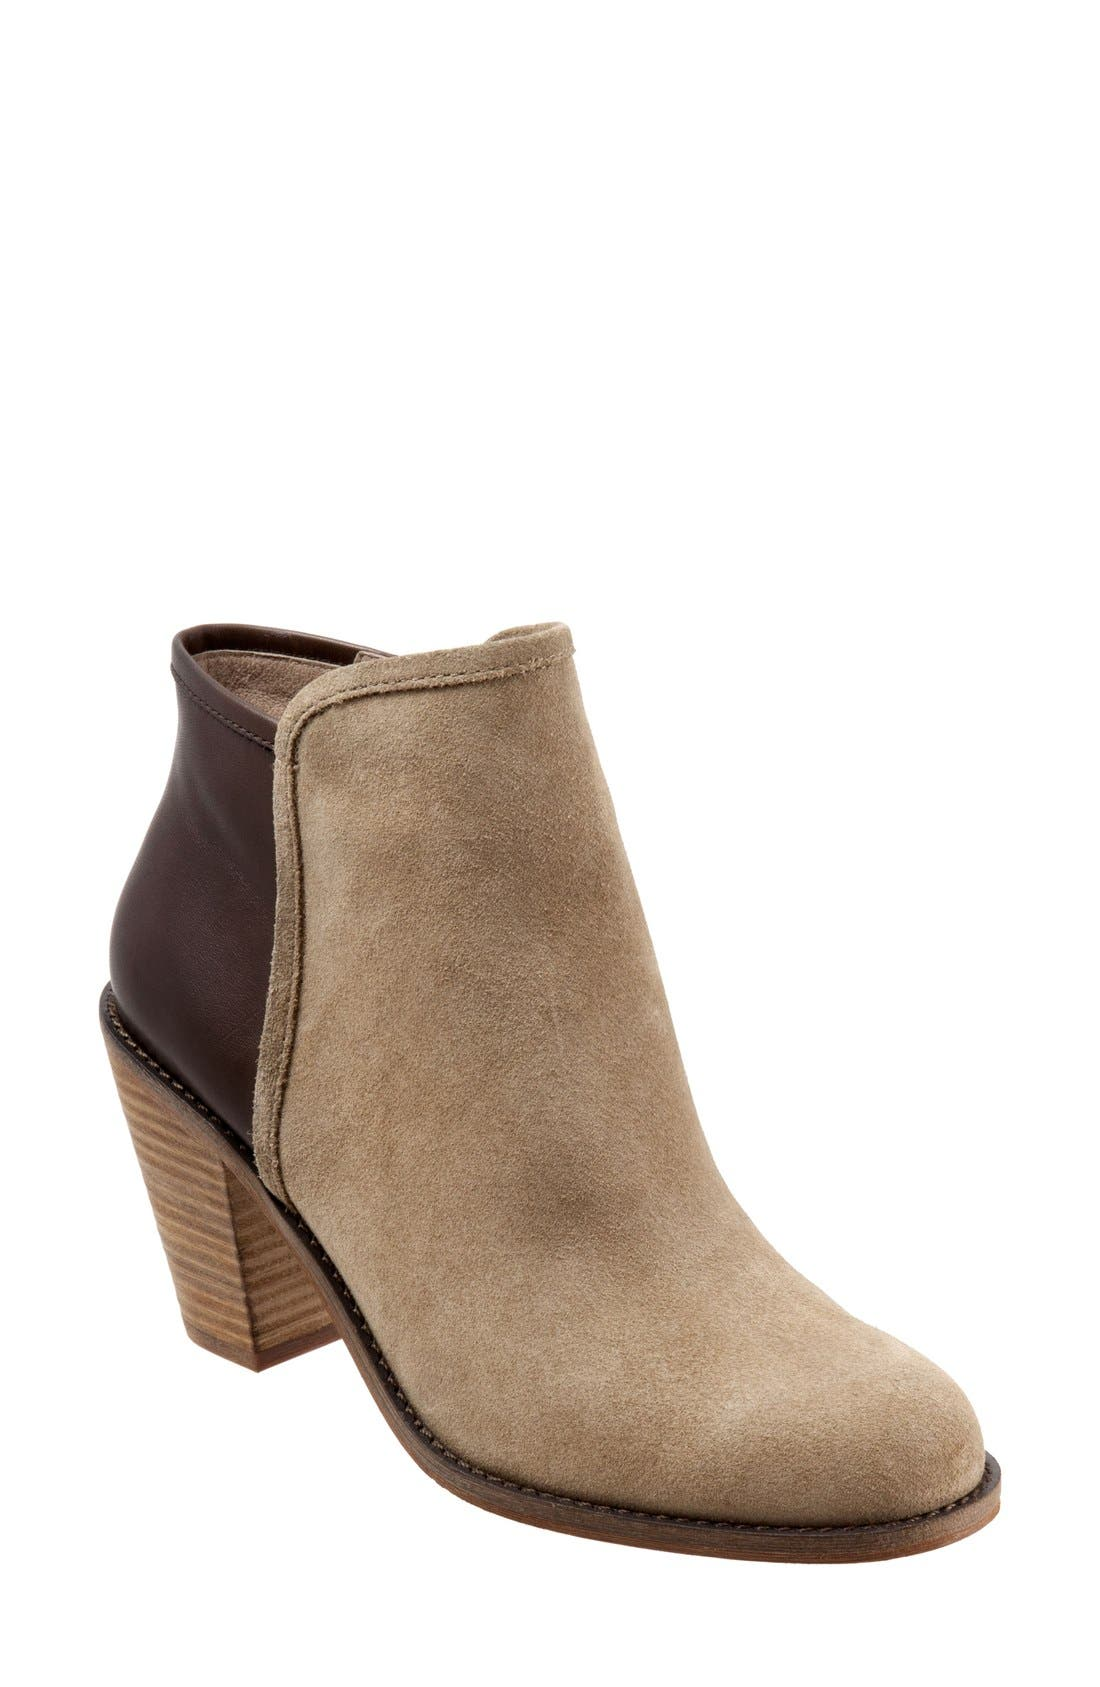 Alternate Image 1 Selected - SoftWalk® 'Frontier' Bootie (Women)